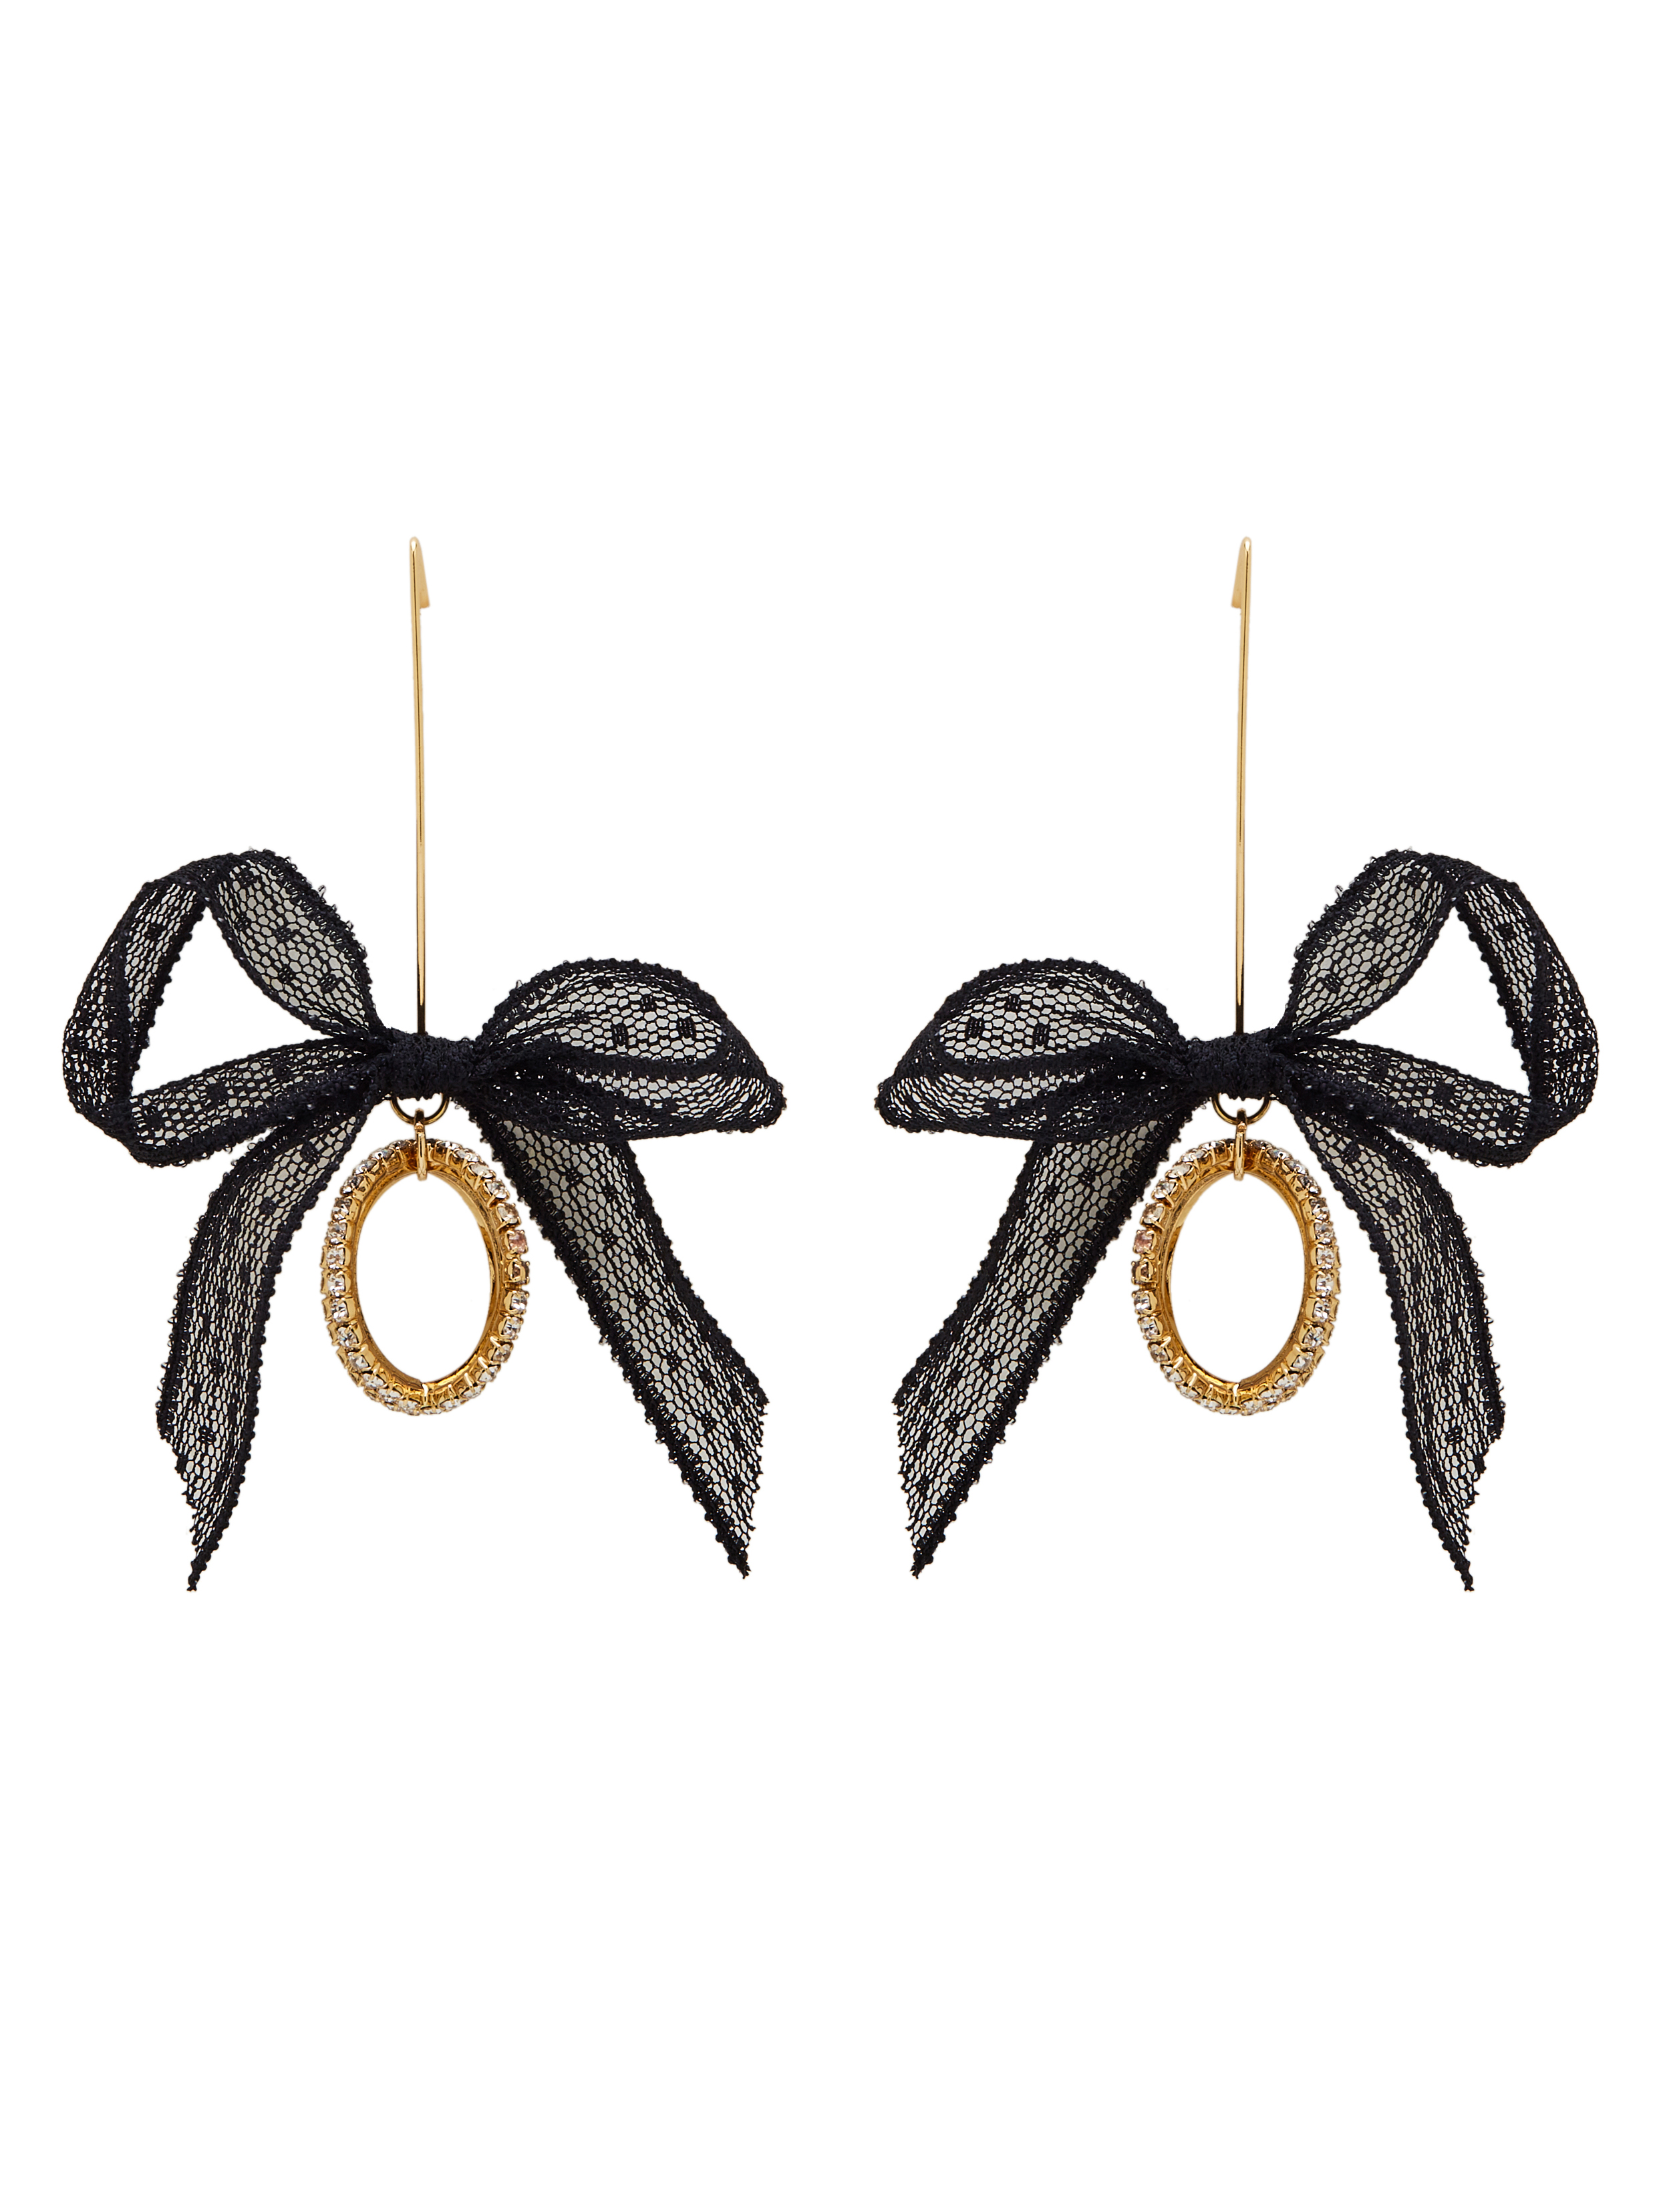 Personalized Gold Plated Zinc Alloy Rhinestone Black Drop Earring